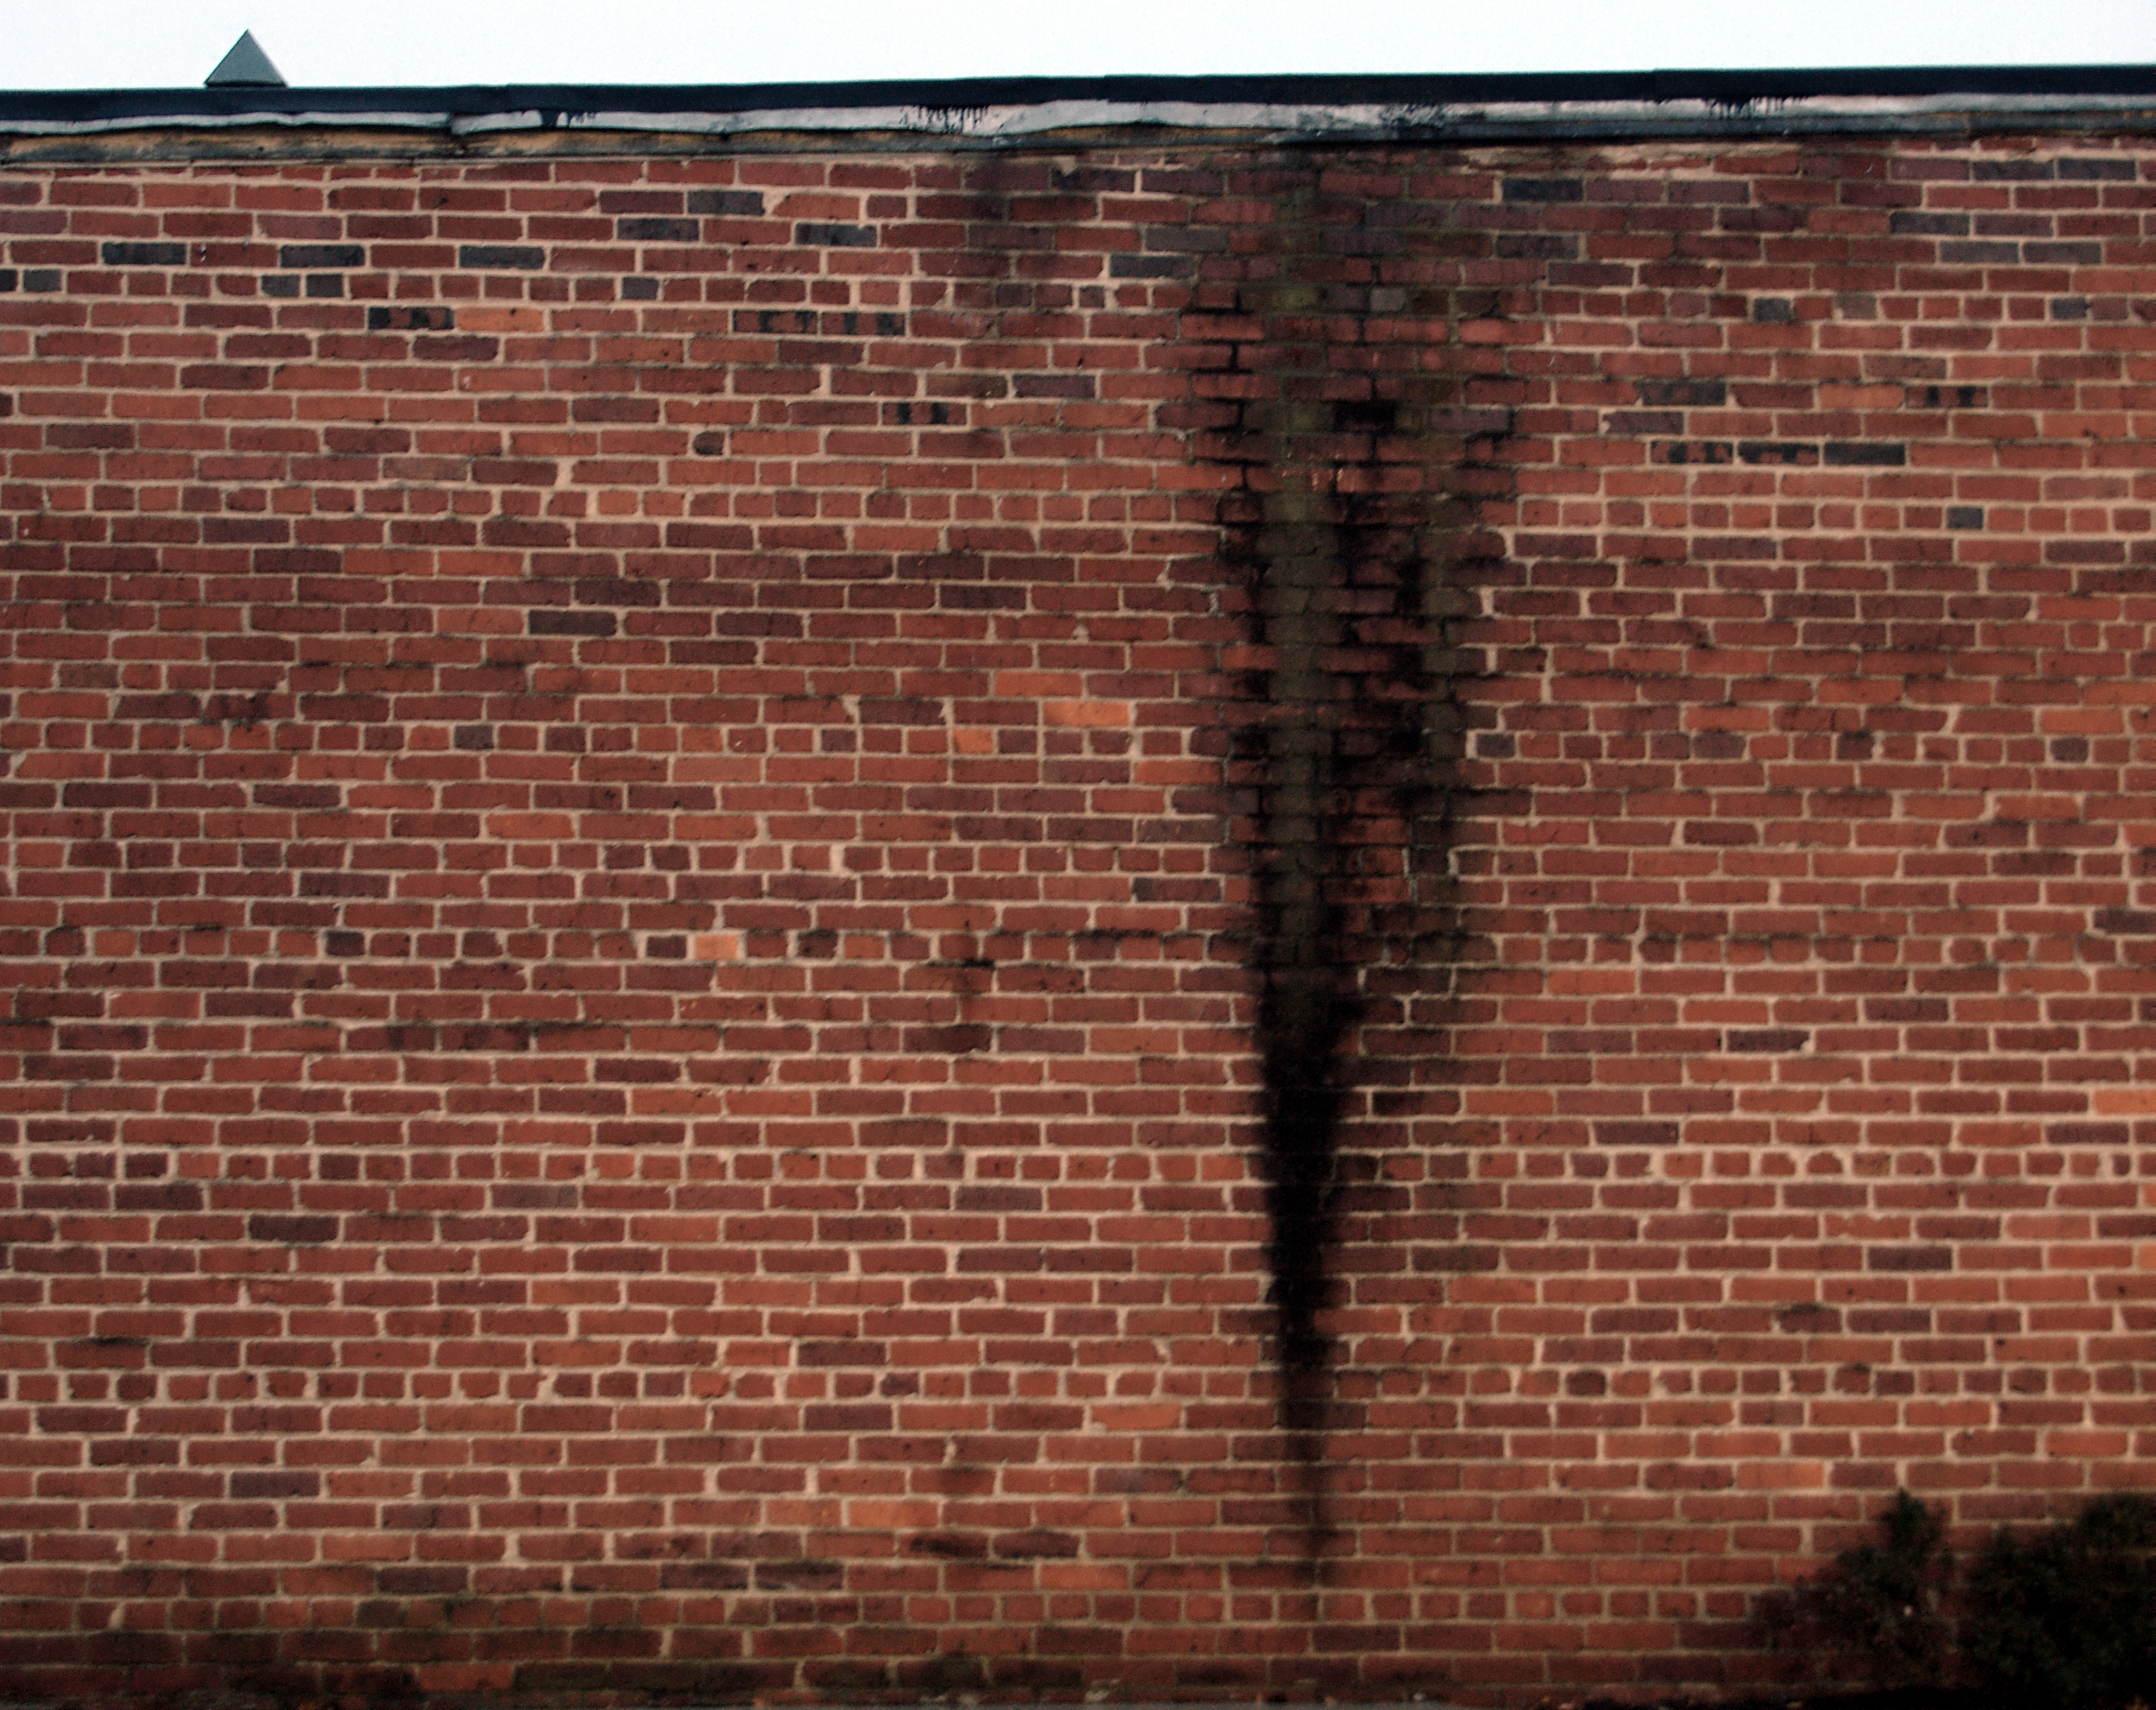 File:Brick Wall, Stain (Silver Spring, MD) (5264805329 ...